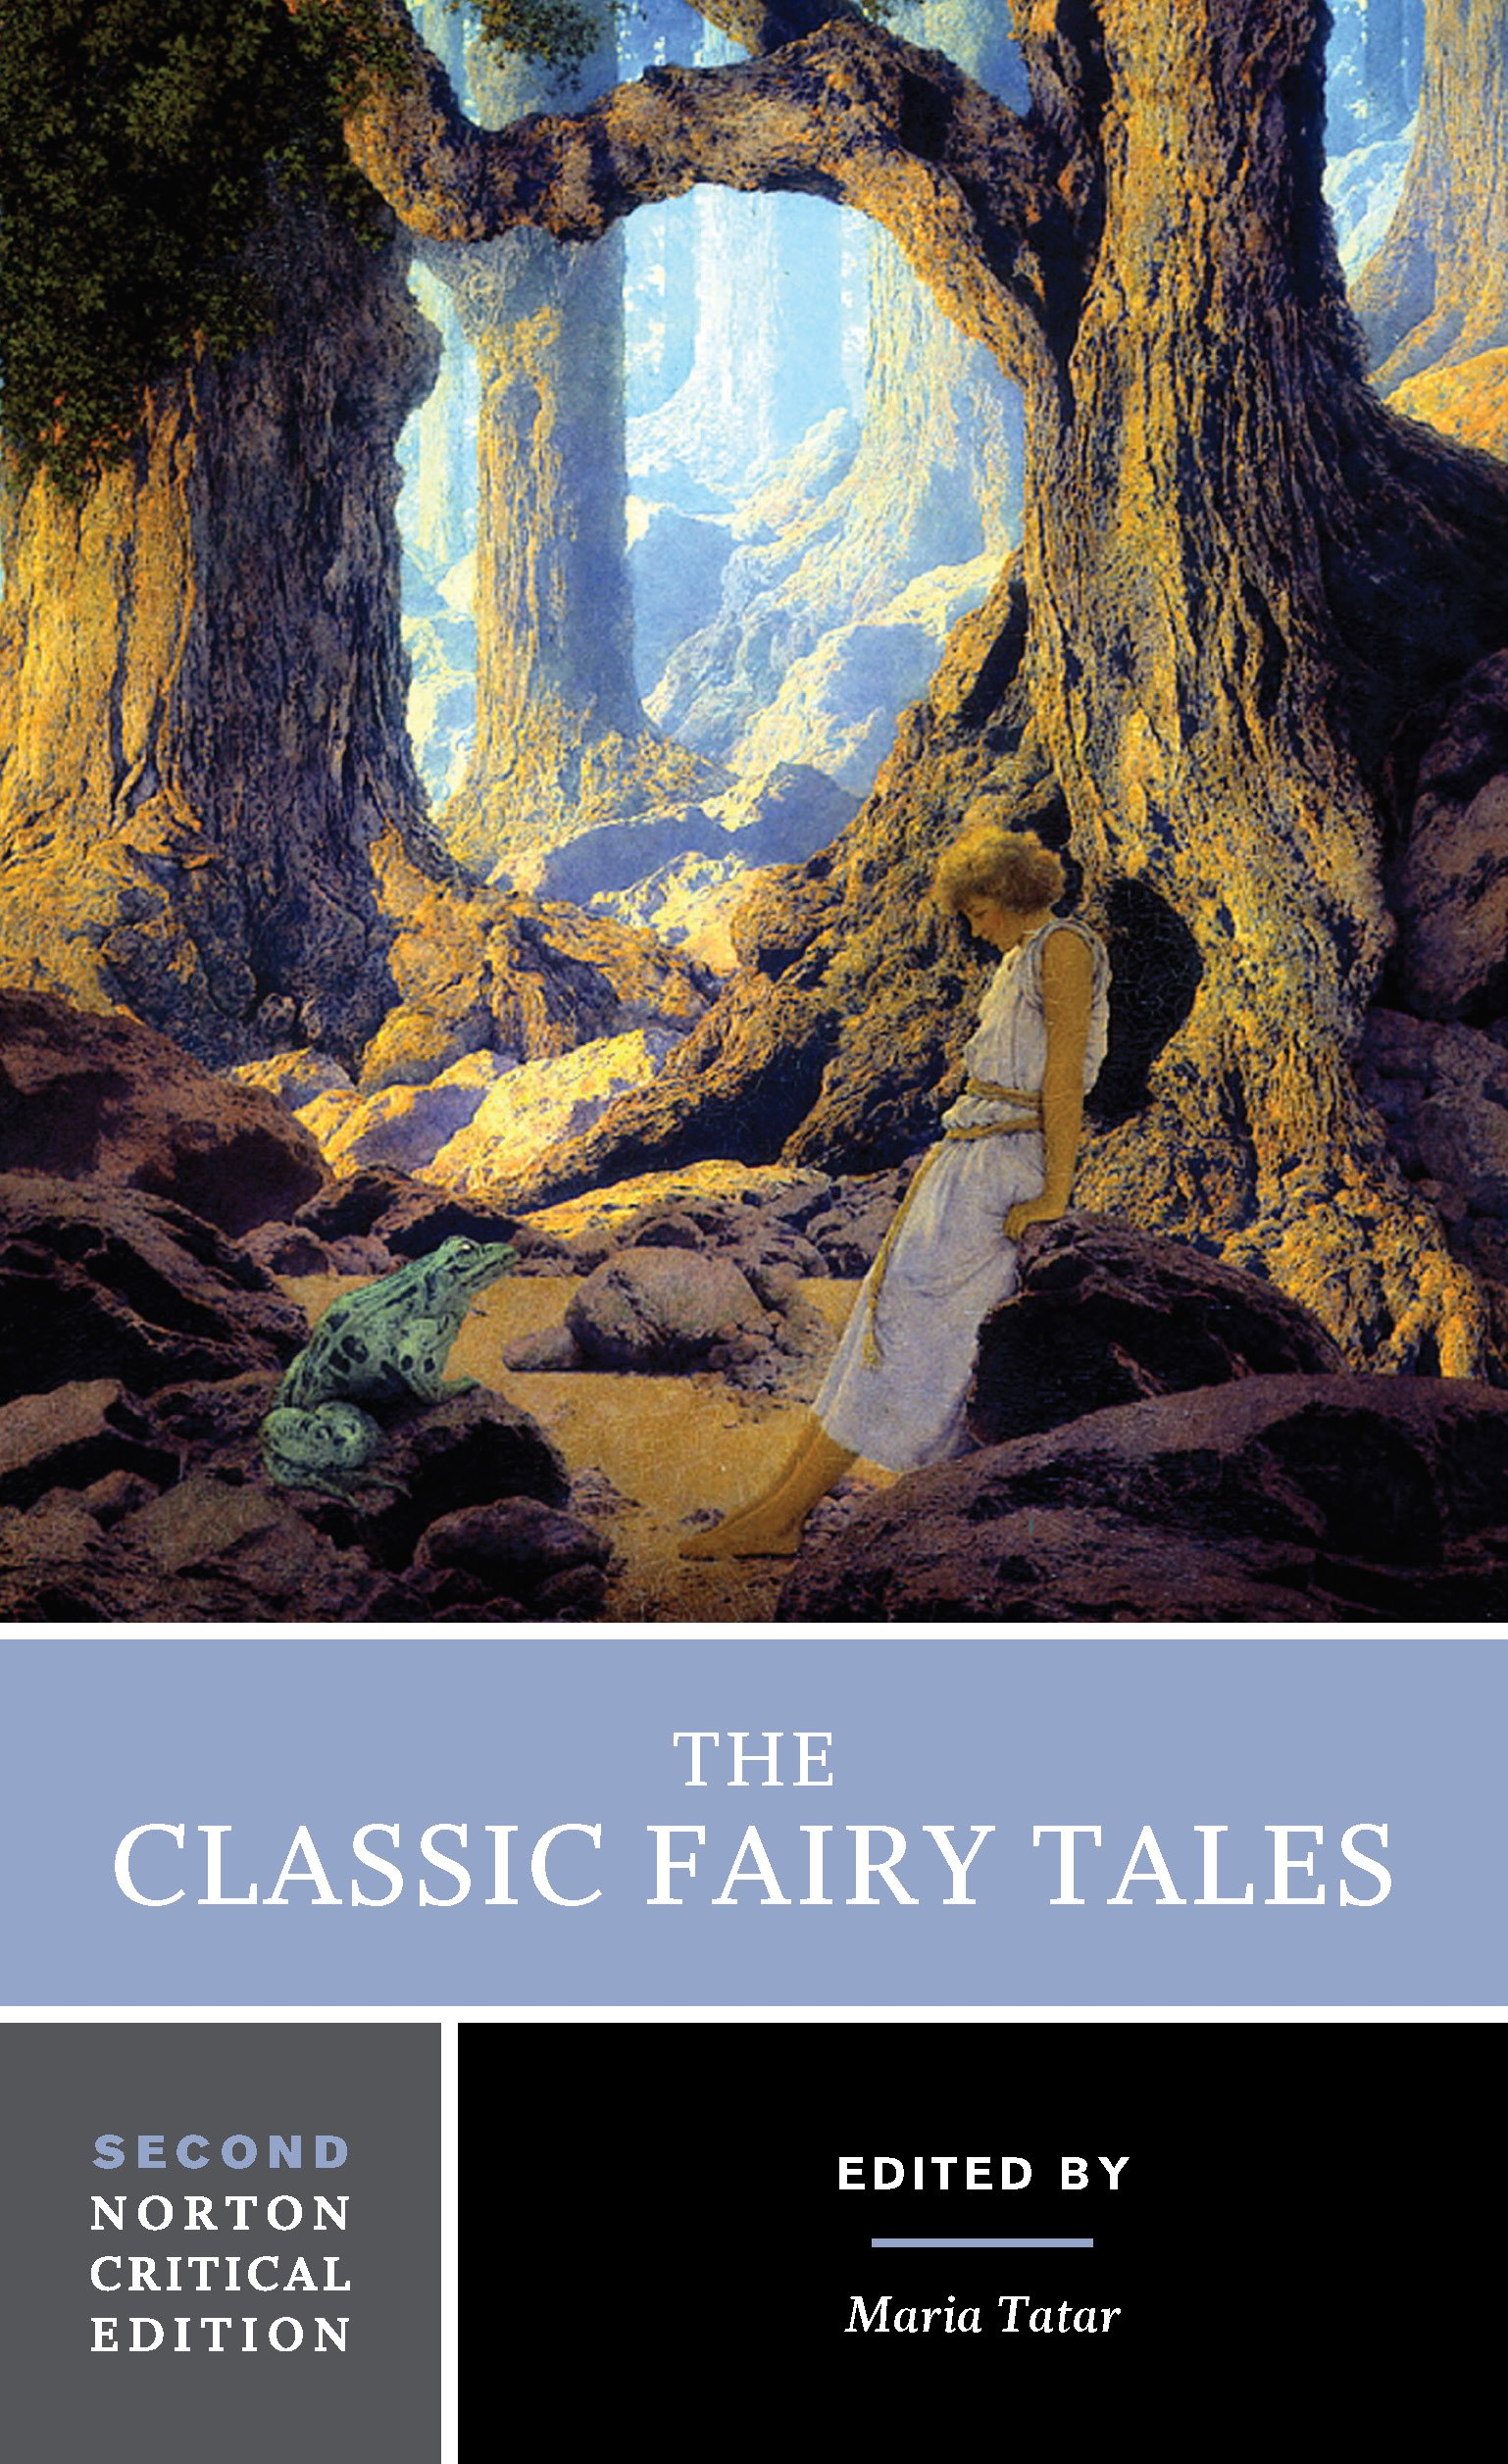 The Classic Fairy Tales Second Edition Norton Critical